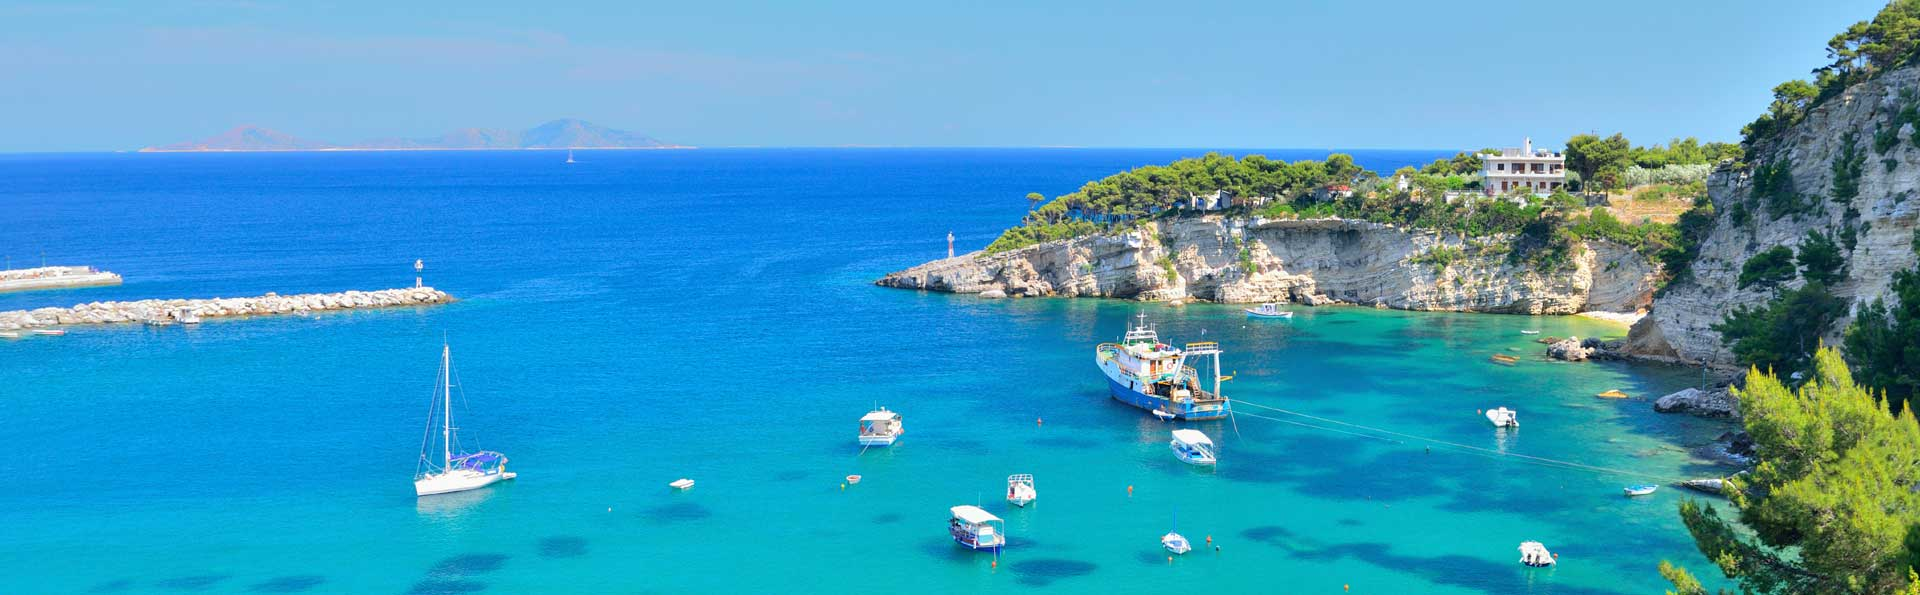 Northern Sporades Islands, Greece